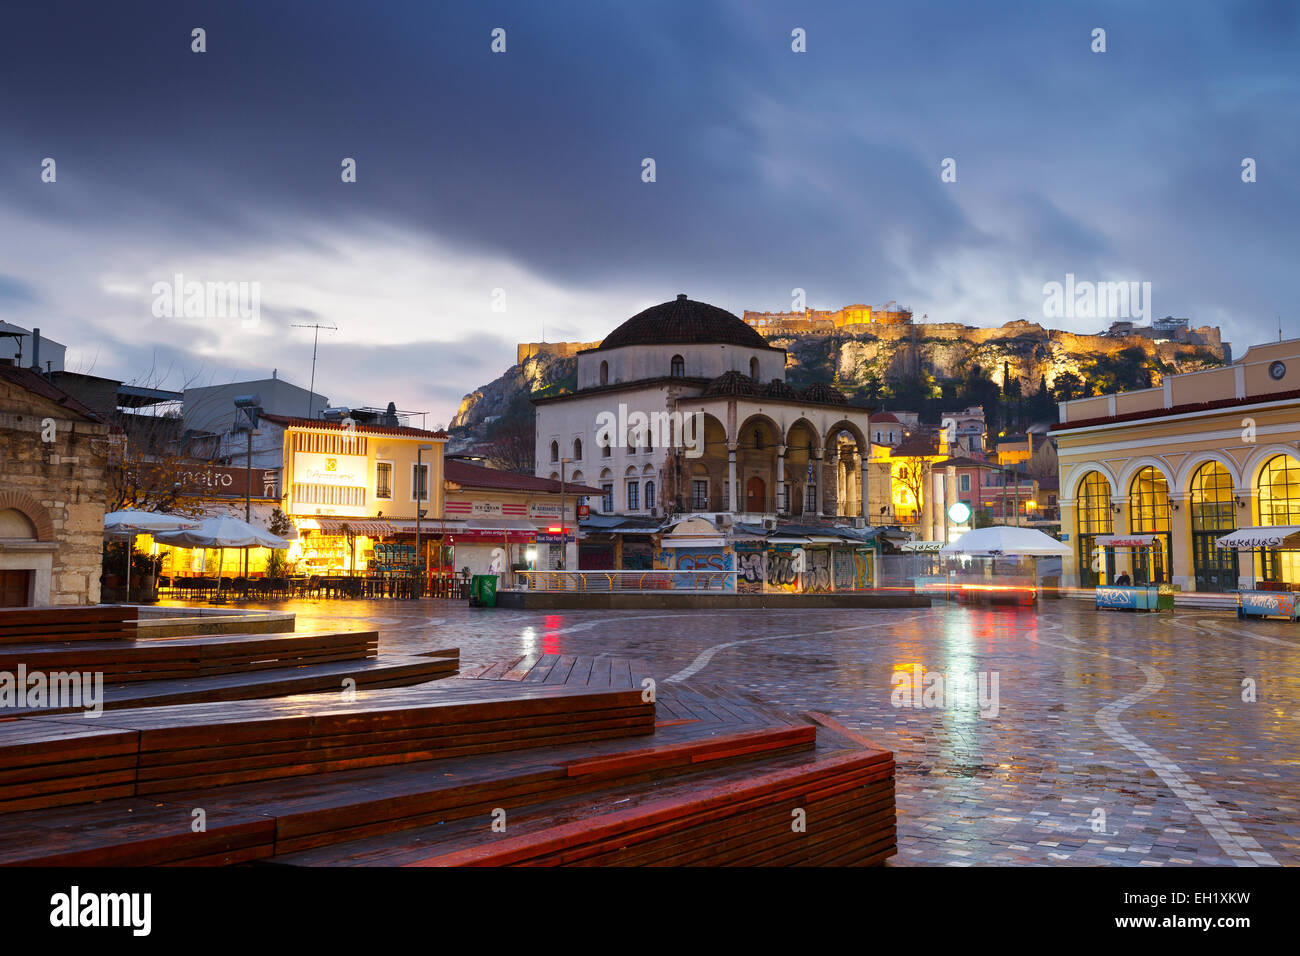 Monastiraki square early in the morning, Athens, Greece. - Stock Image